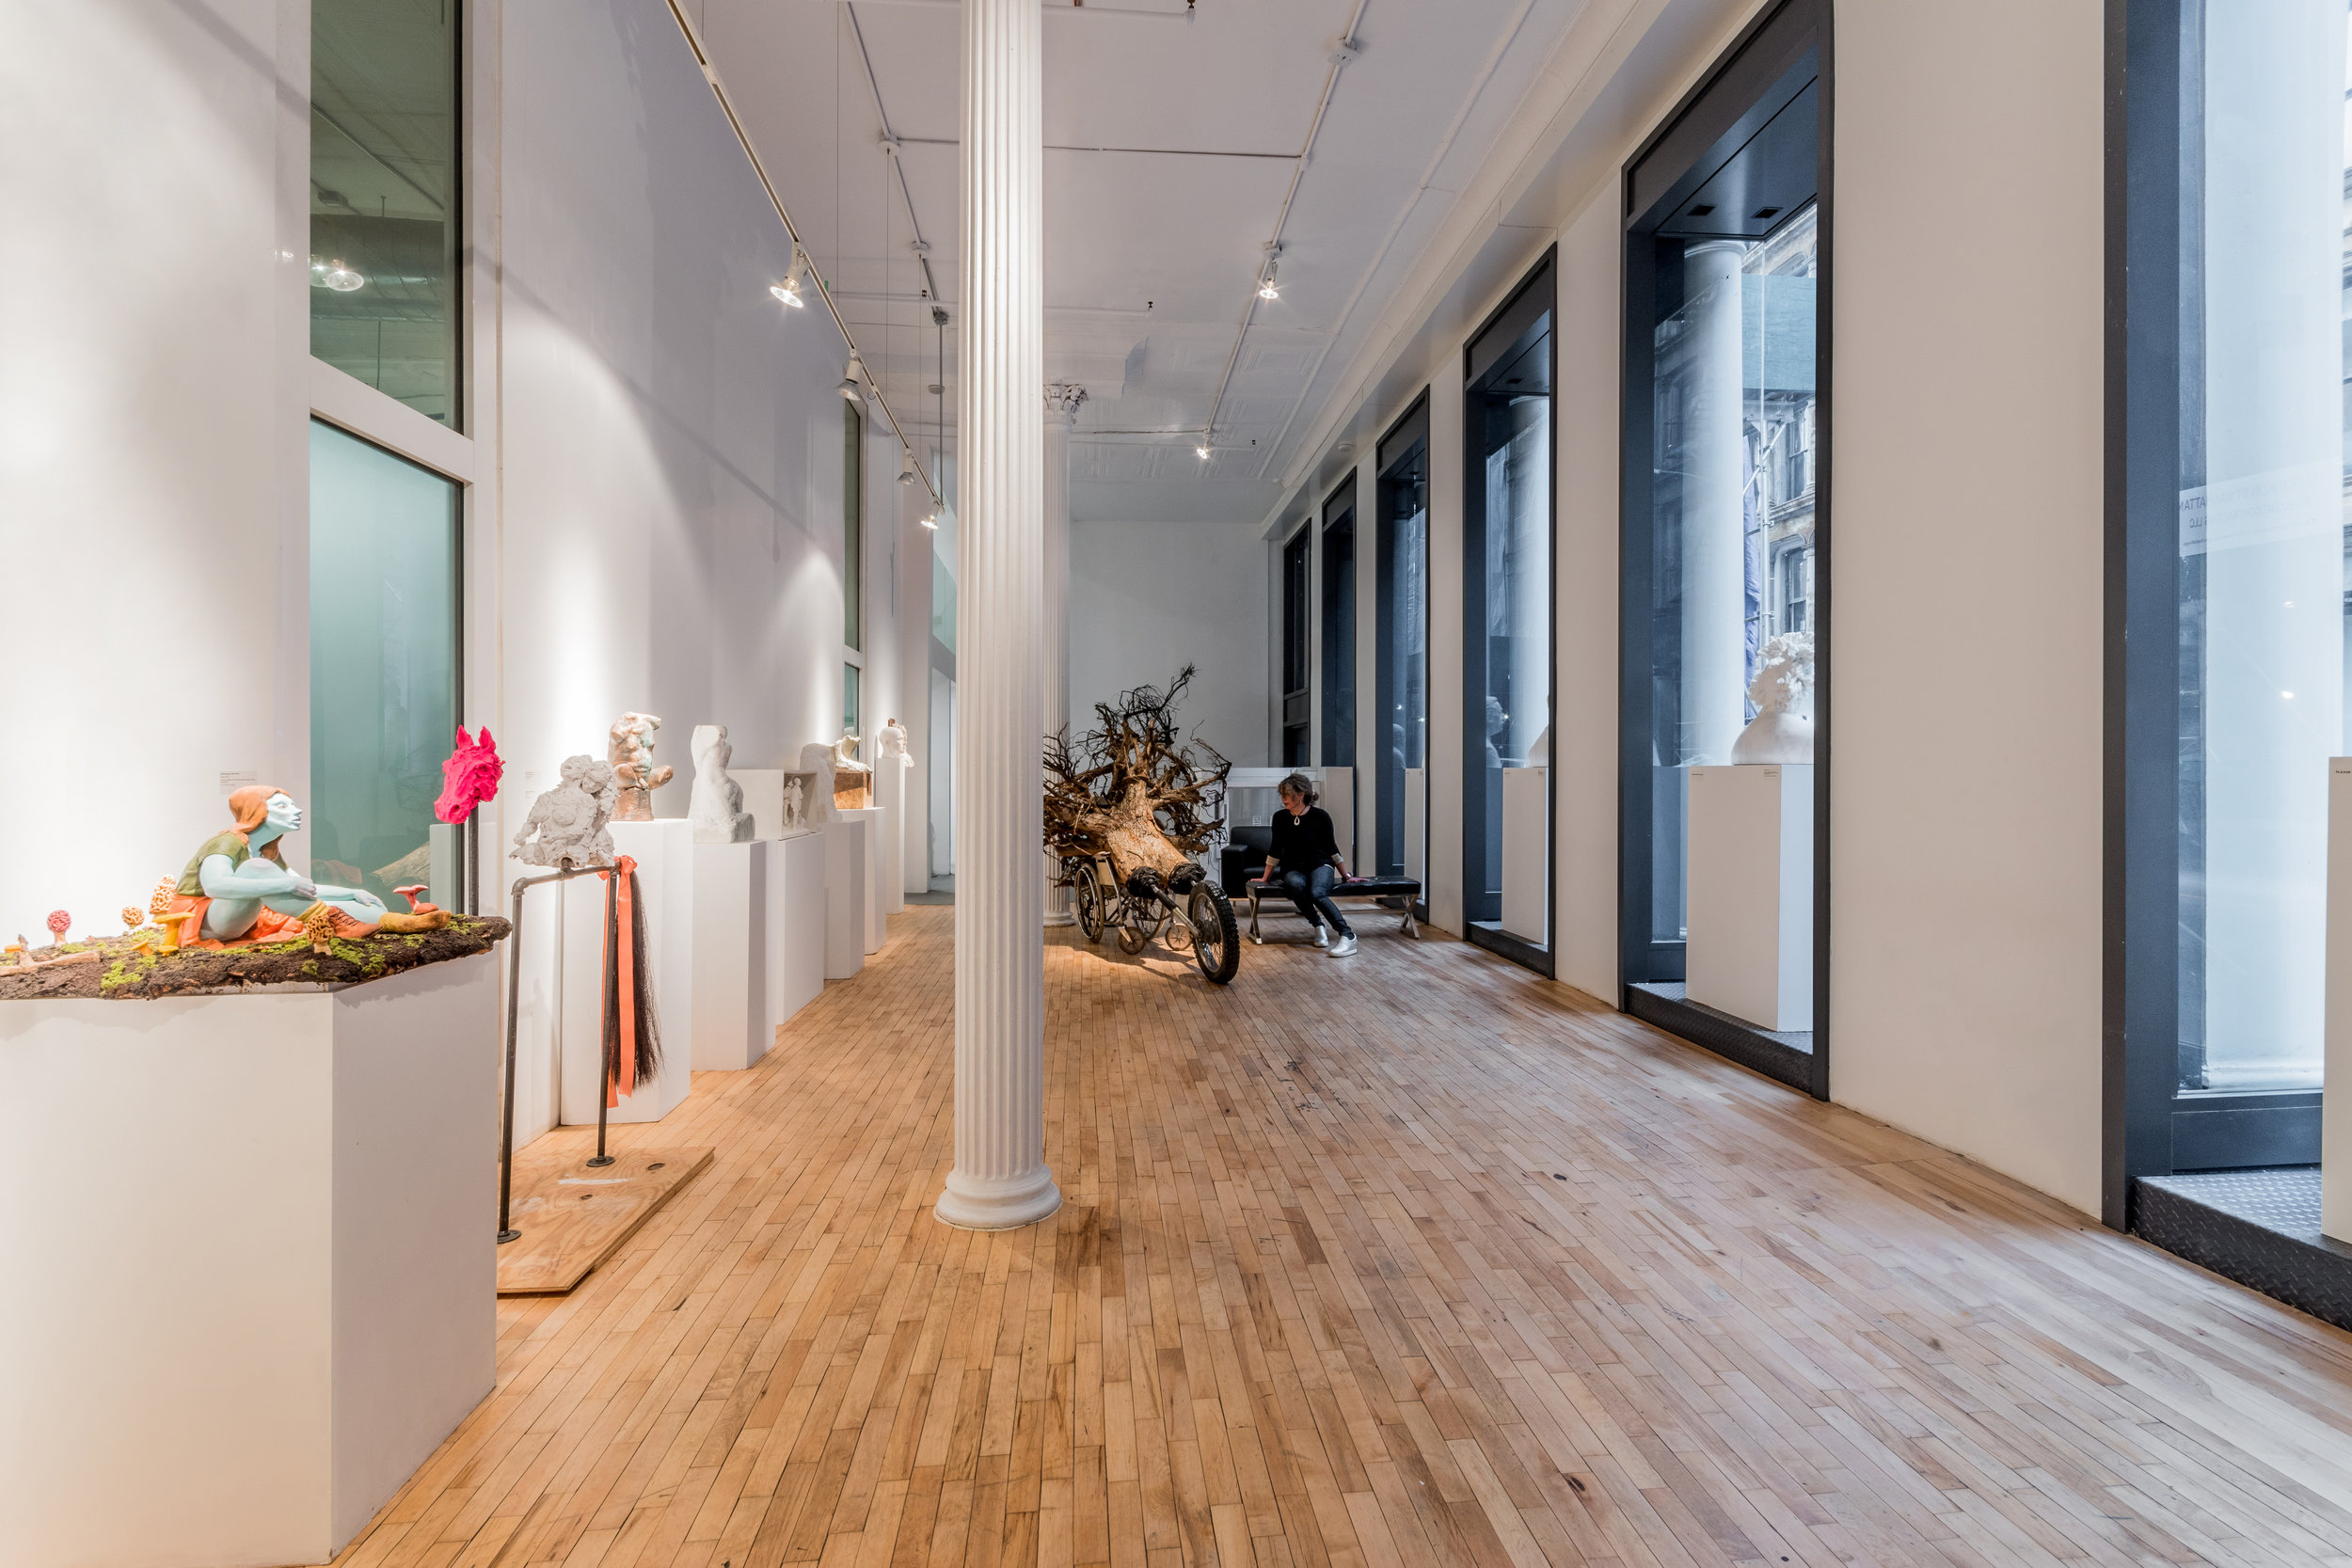 12 New York Academy of Art_new storefront interior_photo Winston Wolf.jpg